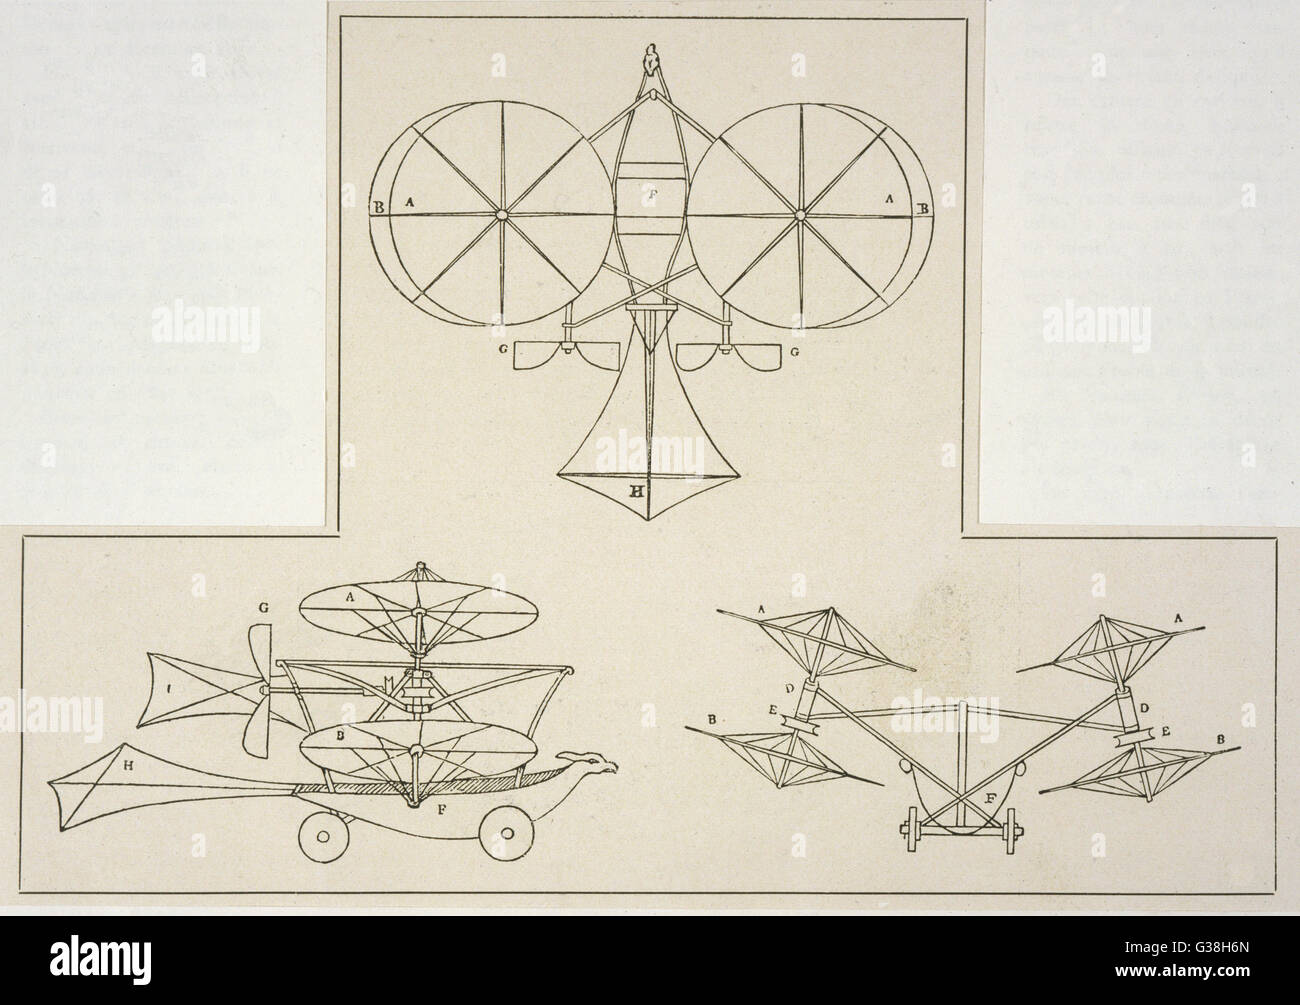 CAYLEY'S HELICOPTER-AEROPLANE With two lateral helicopter  rotors to provide lift, and  two propellers for propulsion, - Stock Image